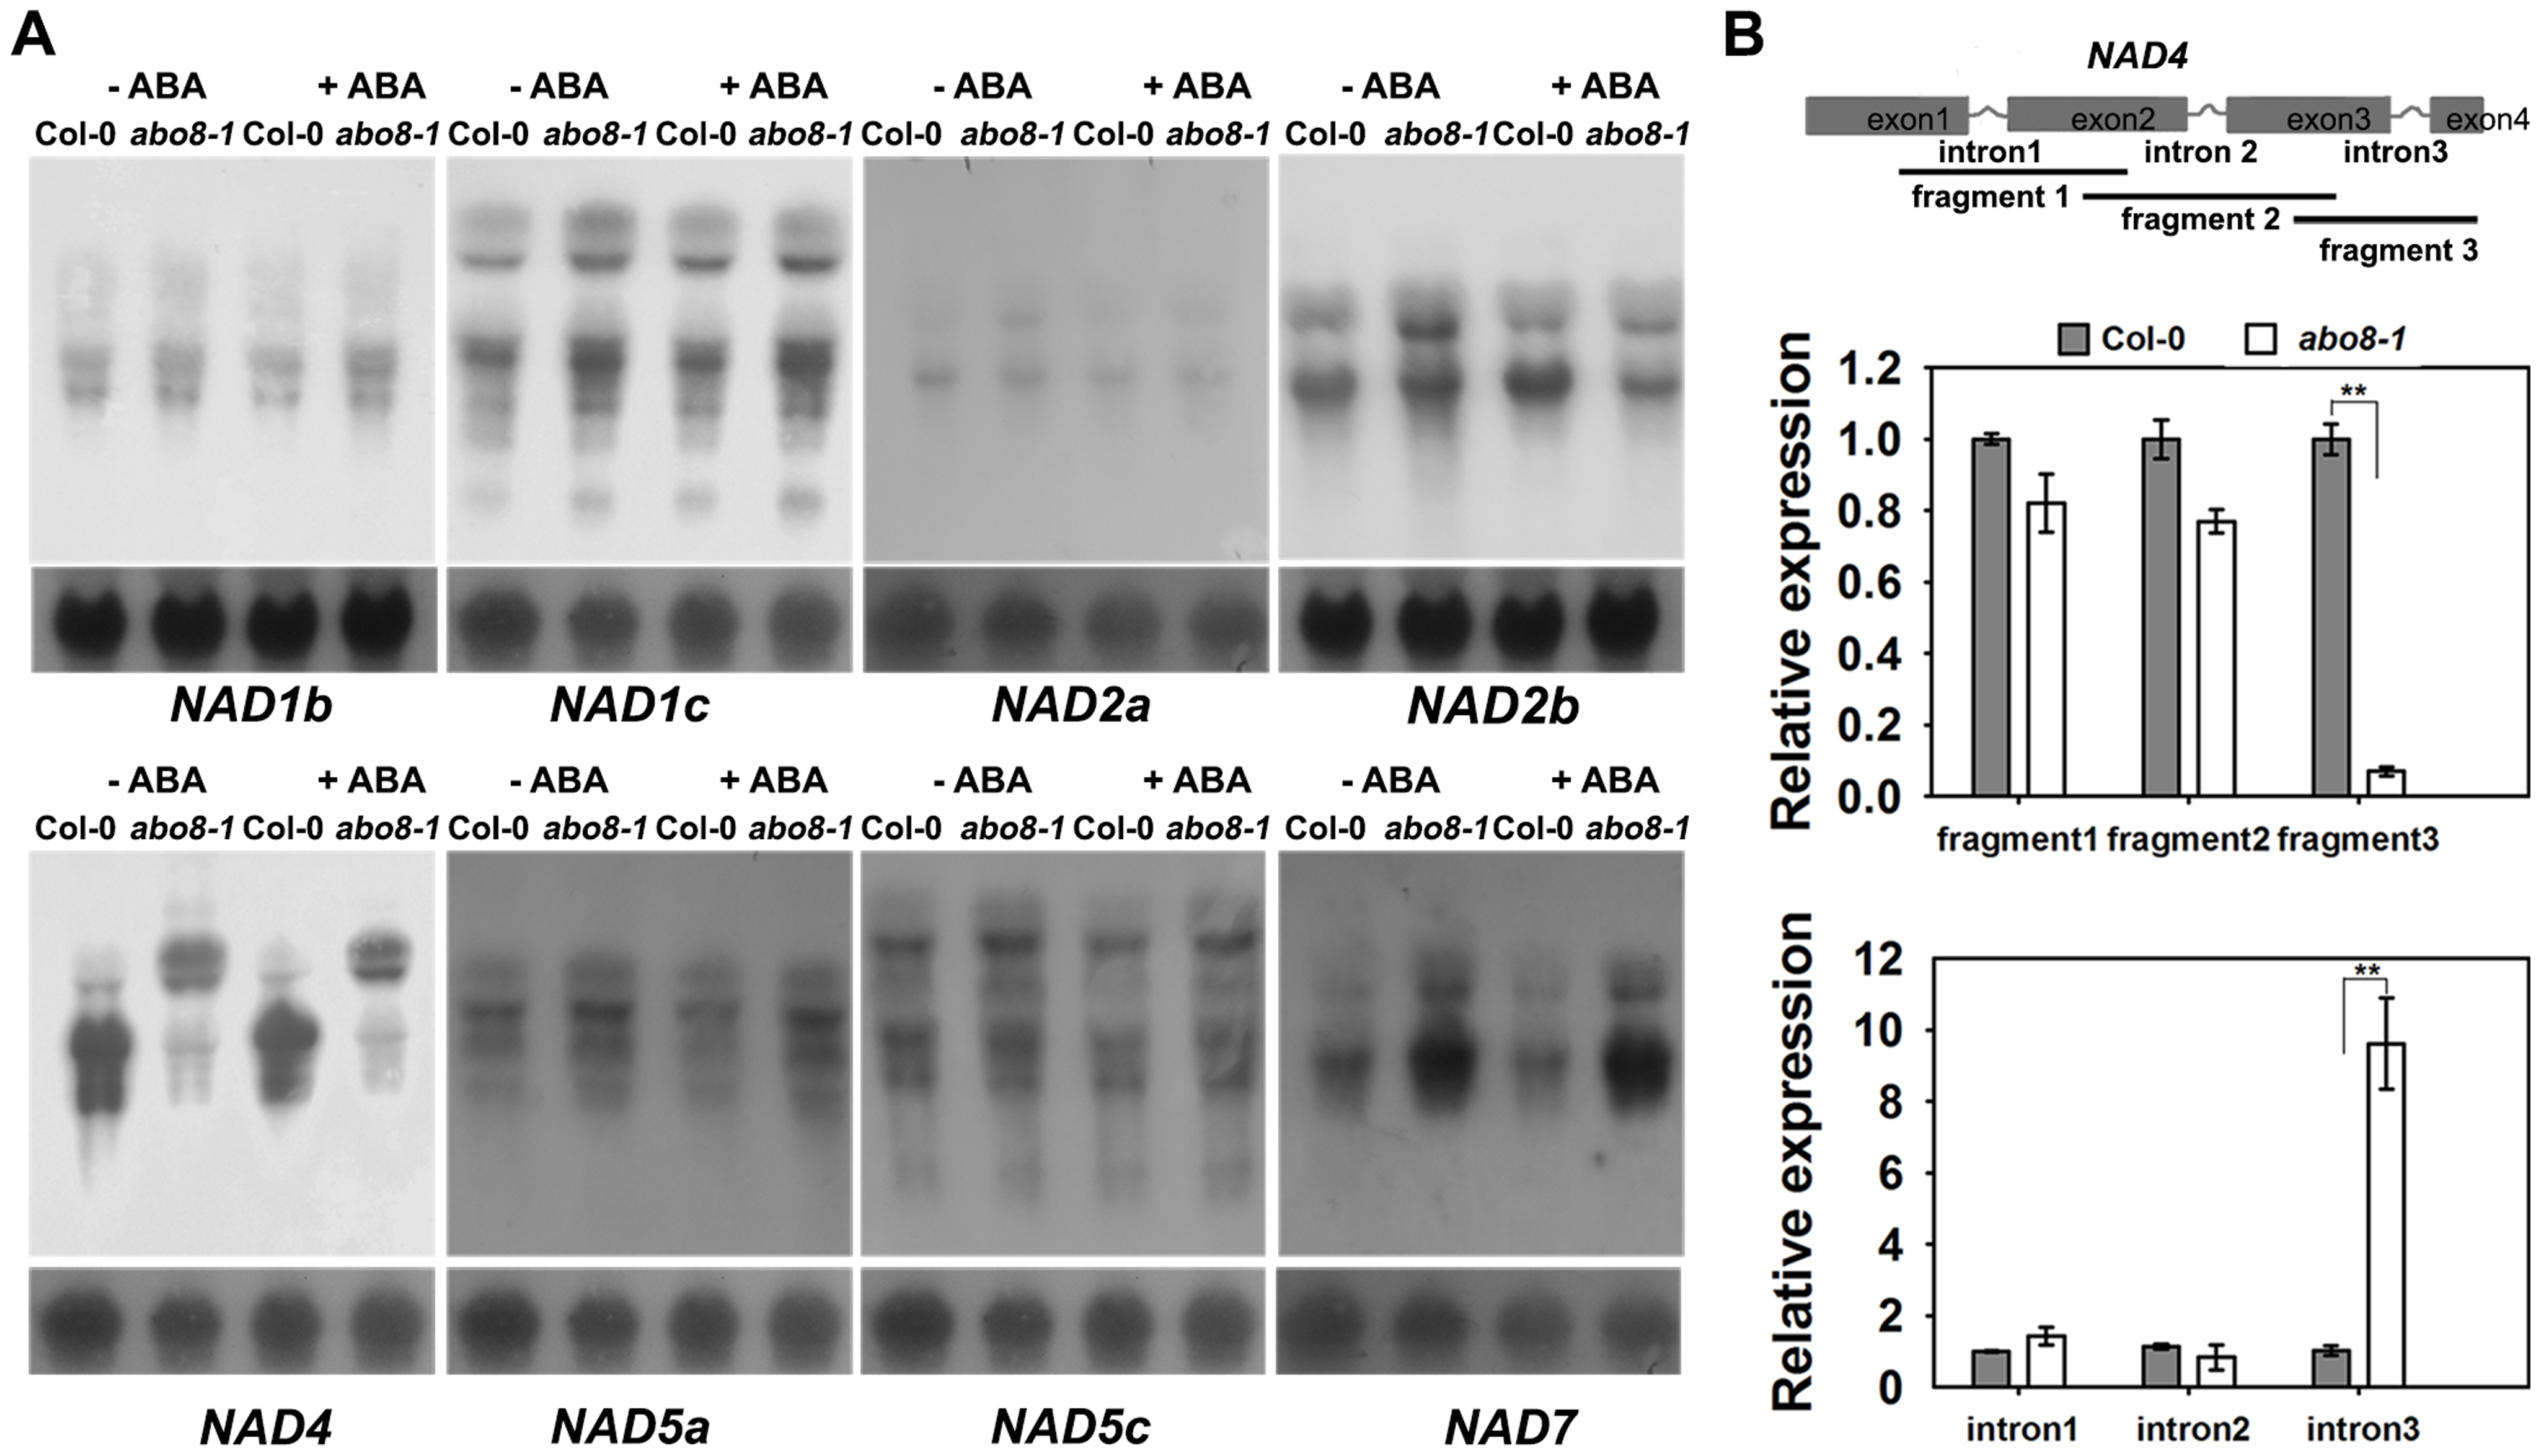 ABO8 regulates the splicing of <i>NAD4</i> intron 3.